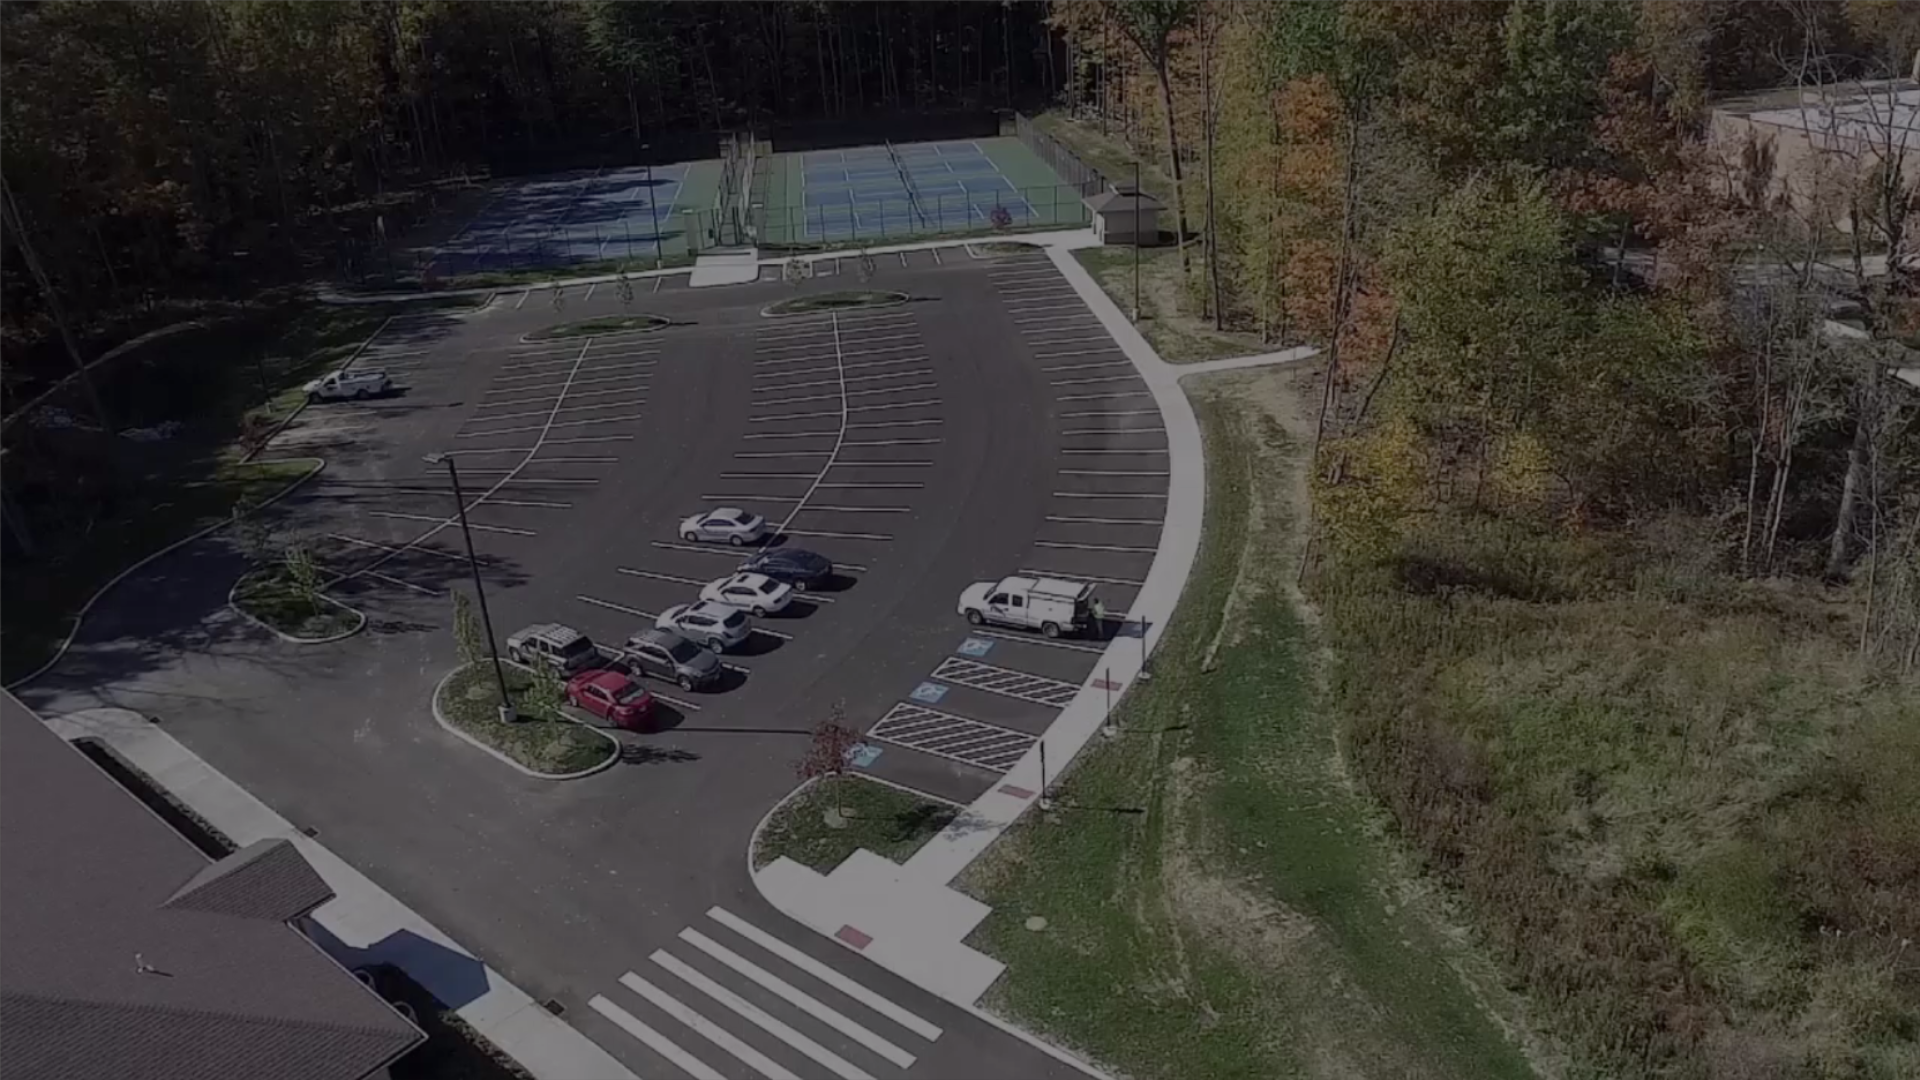 aerial view of parking lot next to blue tennis courts